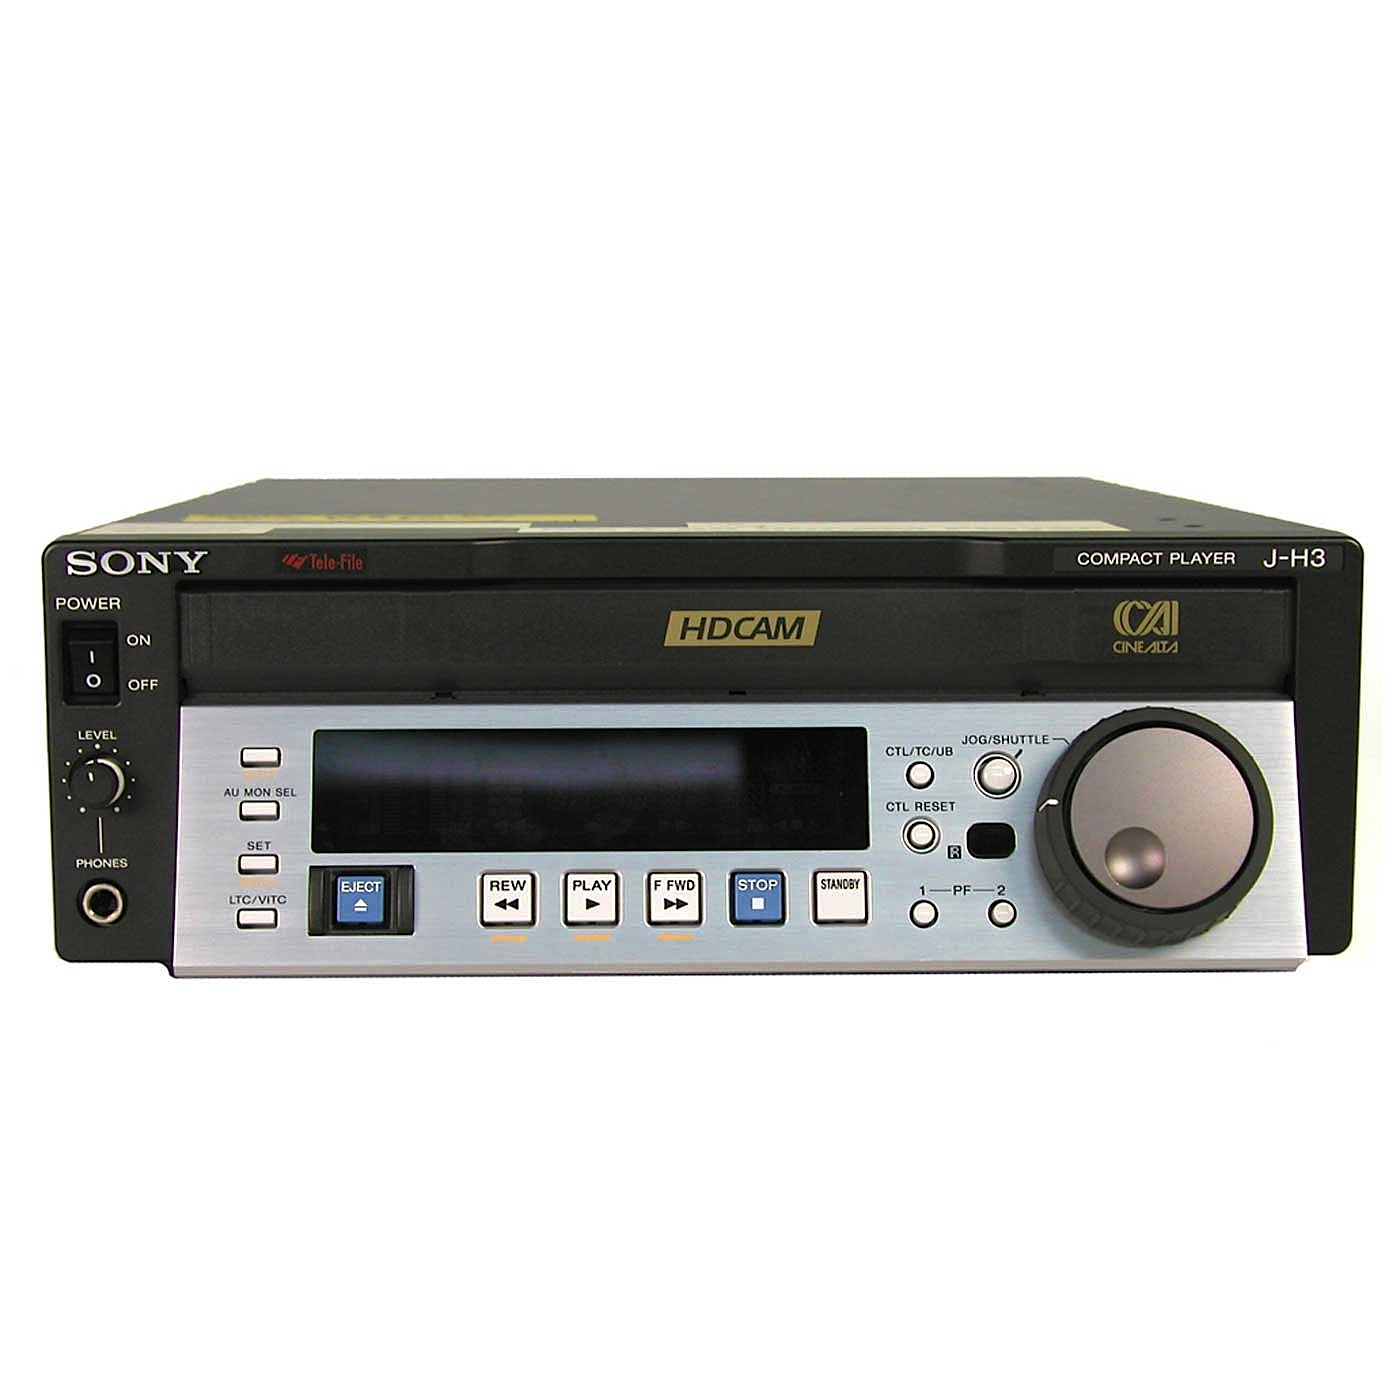 sony j h3 hdcam compact player with firewire rule camera rh rule com Sony TV Service Manuals Sony Google TV Owners Manual